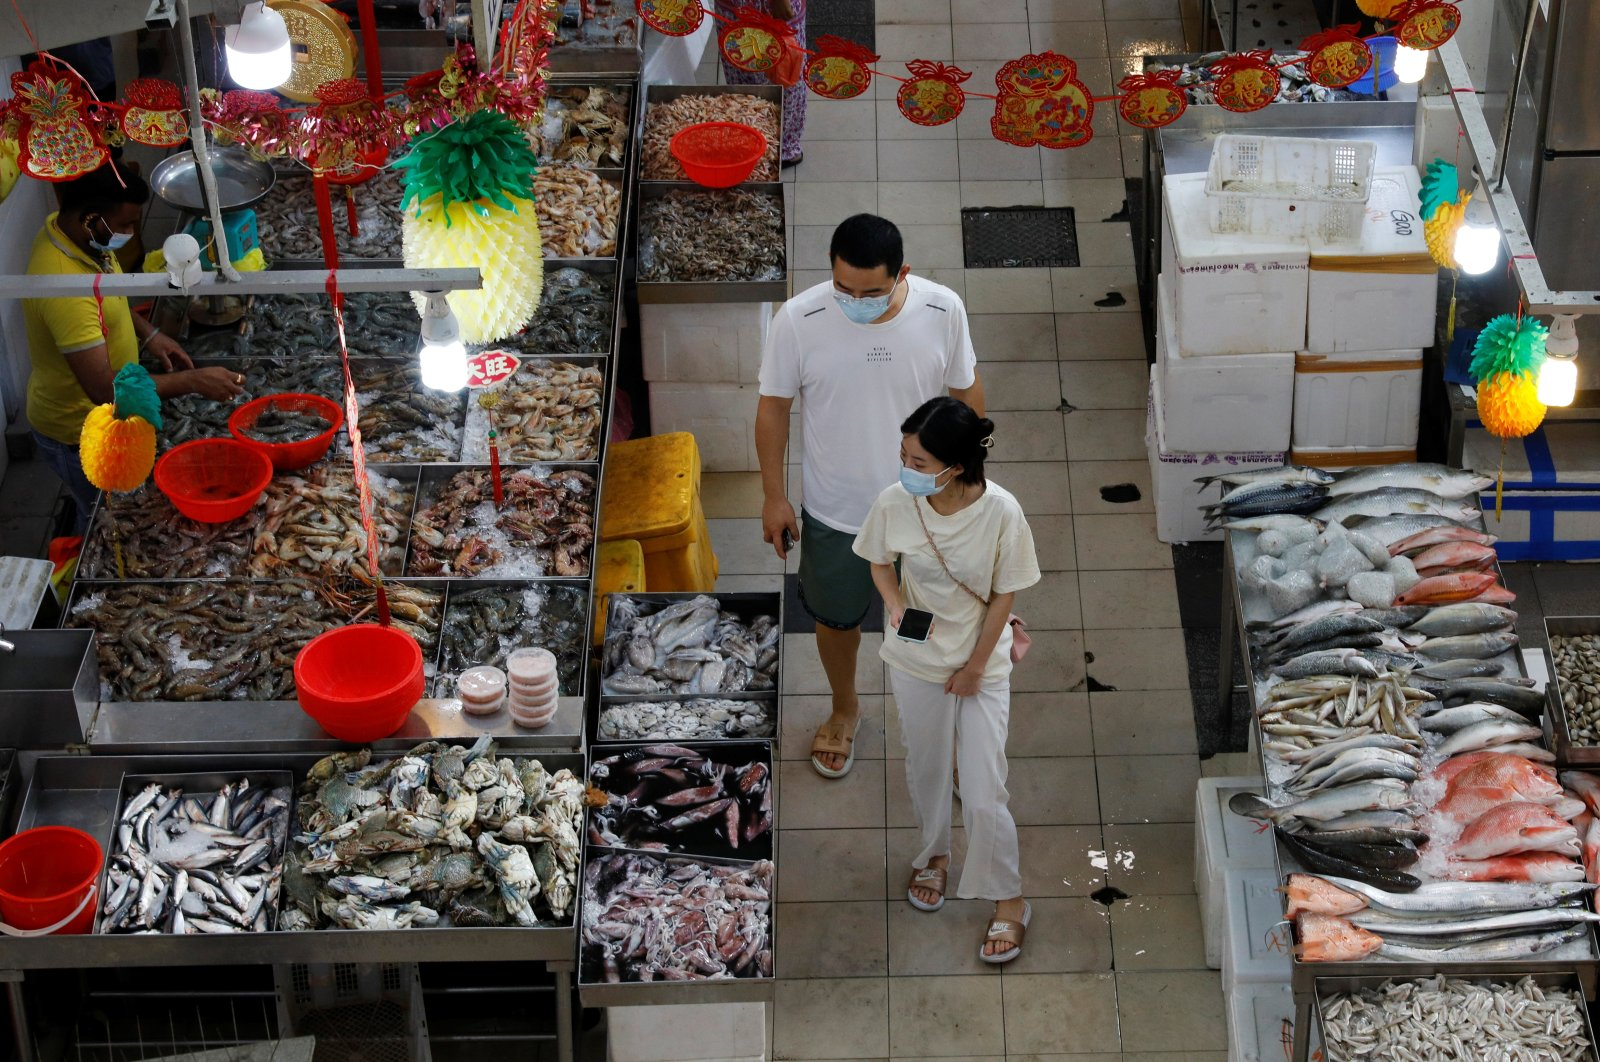 People shop for fish at a wet market during the COVID-19 outbreak, in Singapore, Sept. 21, 2021. (REUTERS Photo)